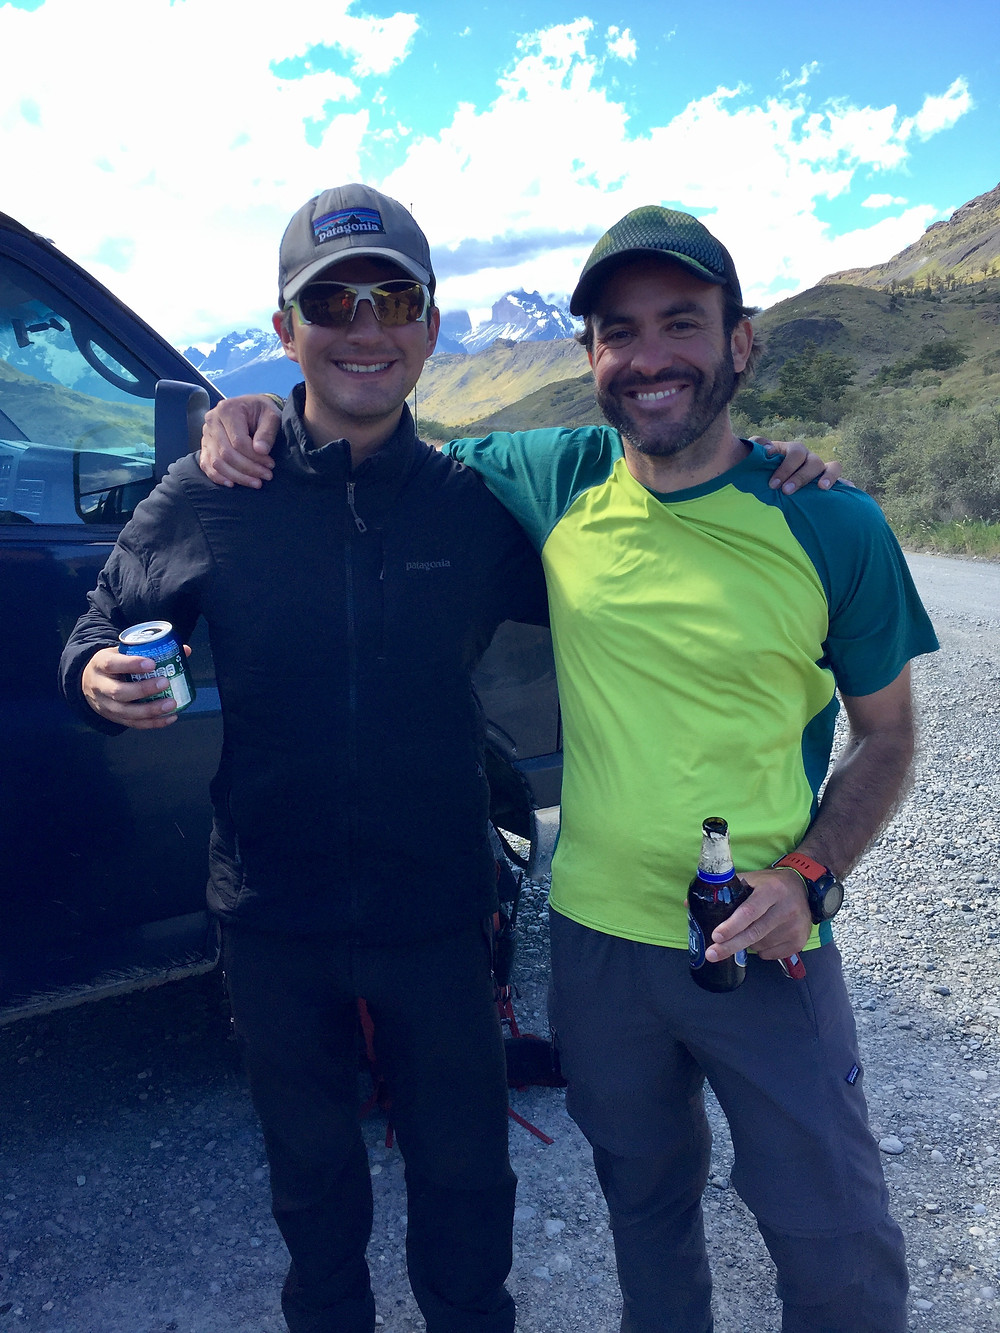 Two of our Explora guides - always smiling, even on the hardest hikes. AND with cold beers waiting for us at the end!